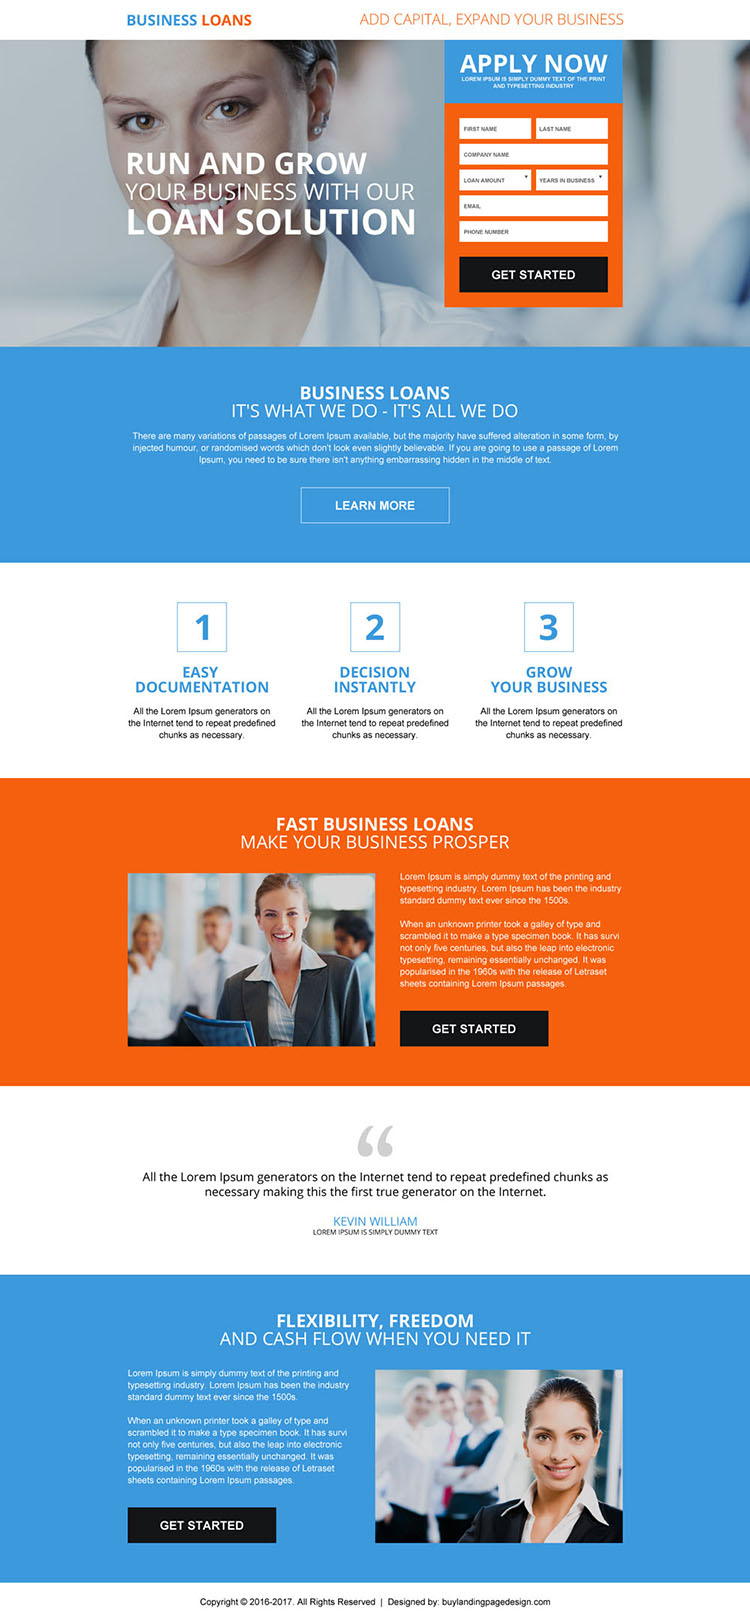 business loan best converting landing page design